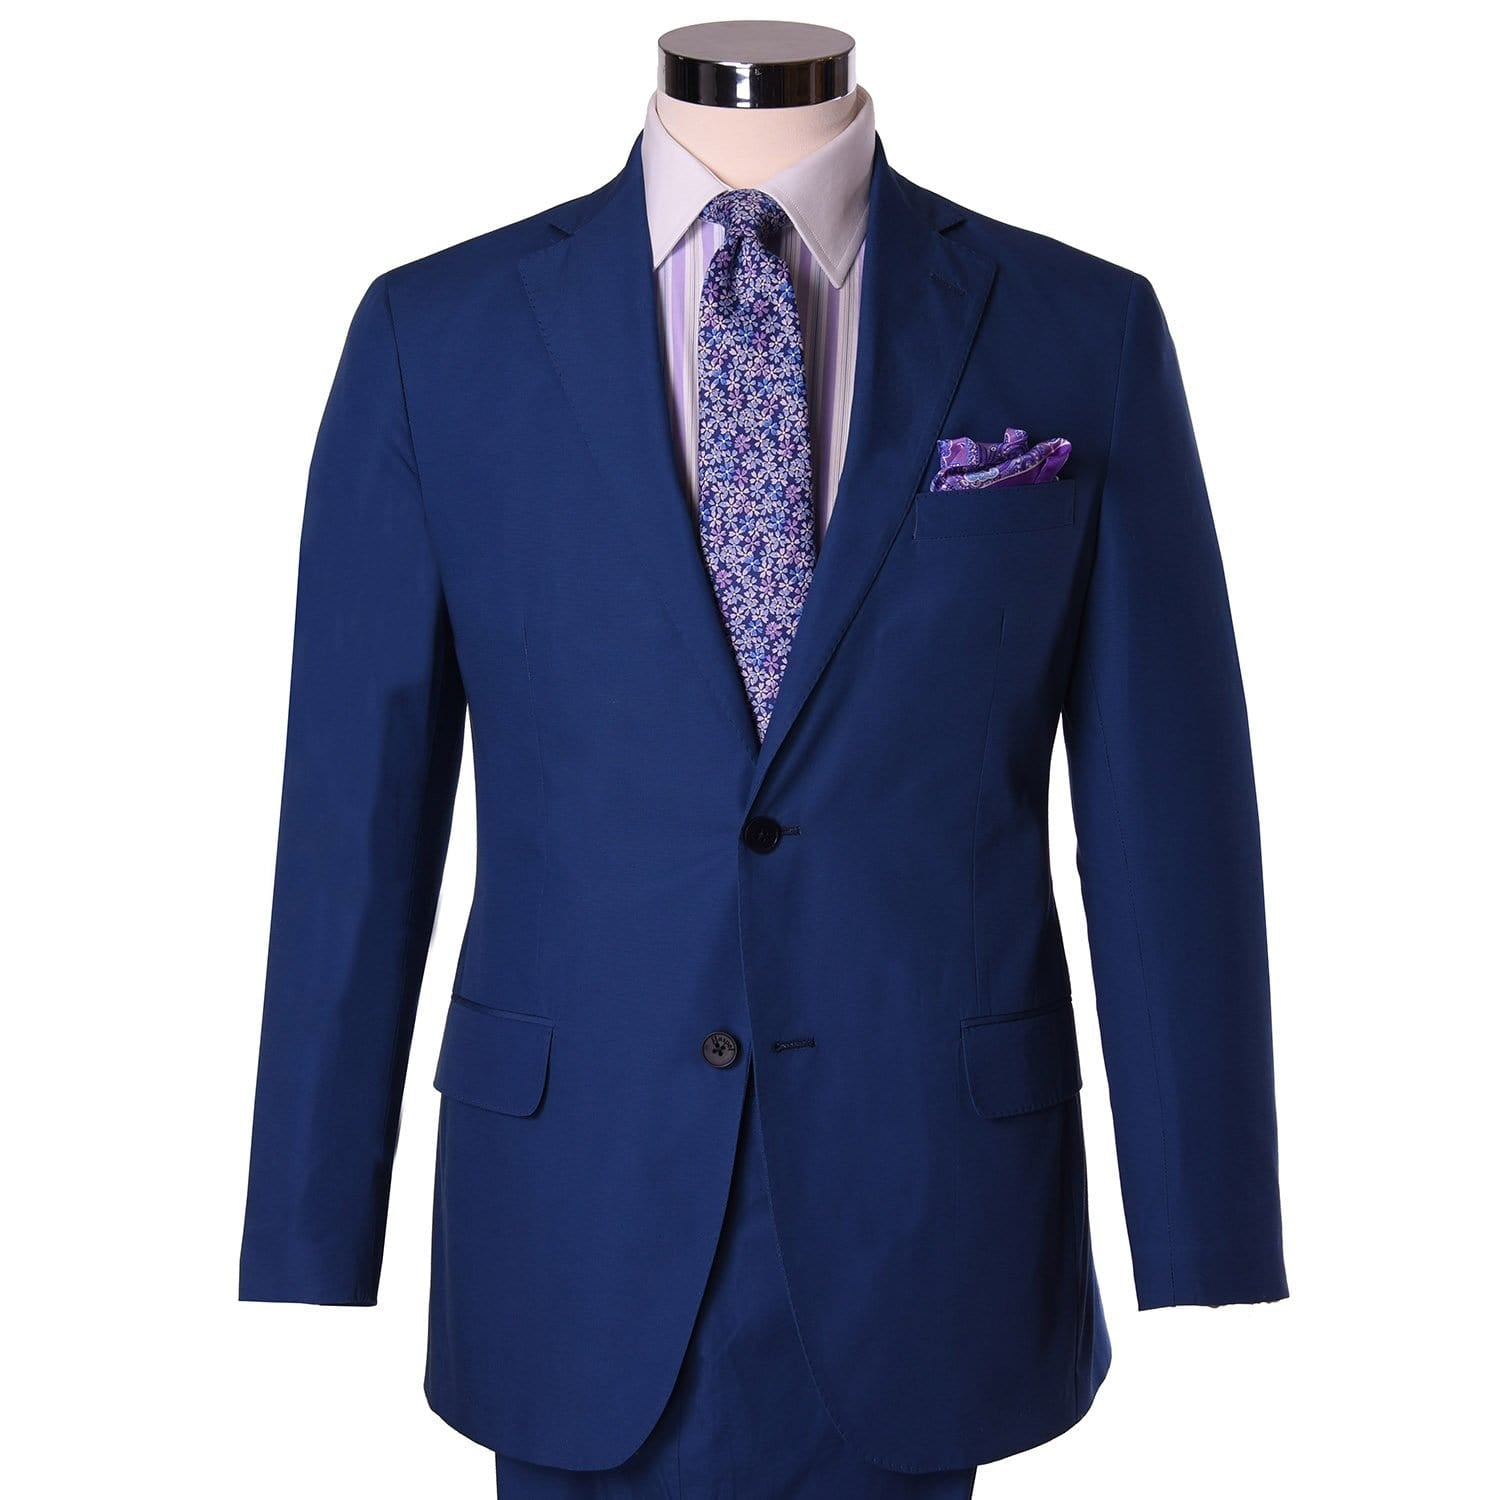 Channel Blue Poplin Sport Coat - Haspel Clothing